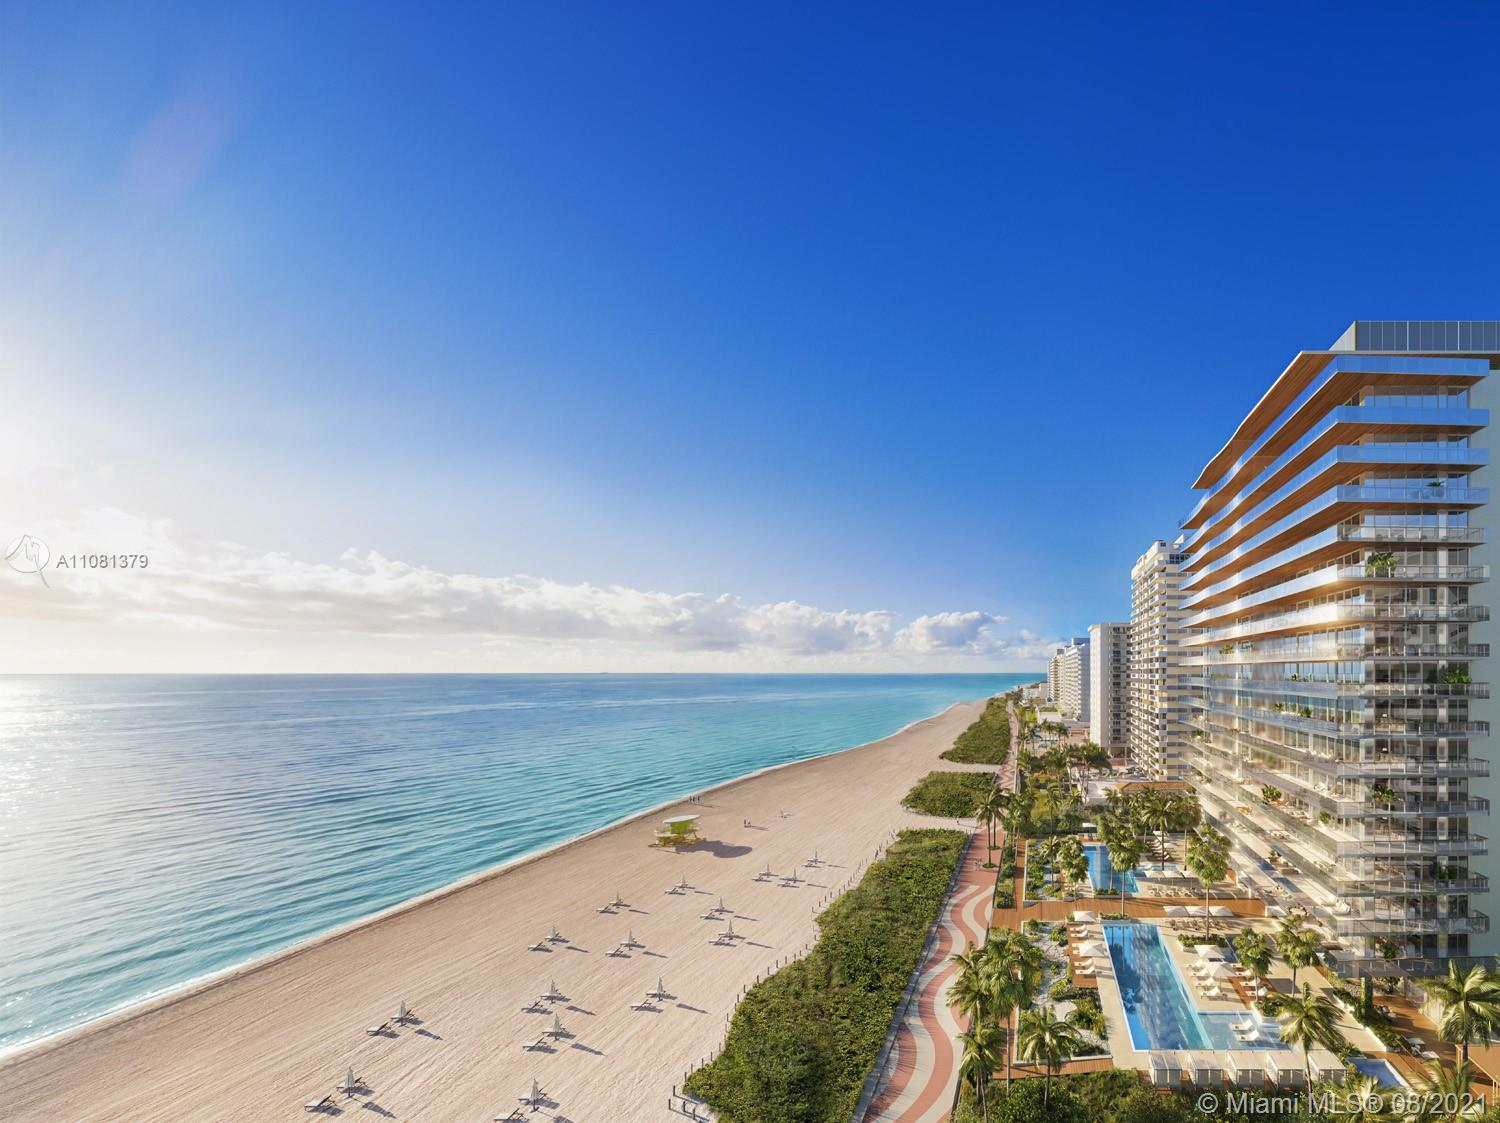 A heaven for quality time and tranquility, 57 Ocean is comprised of ocean front residences that share a privileged gaze over the sand of iconic Millionaire's Row, Miami Beach's most beautiful and exclusive stretch of beach front. The rest of the remark is on the body of the email